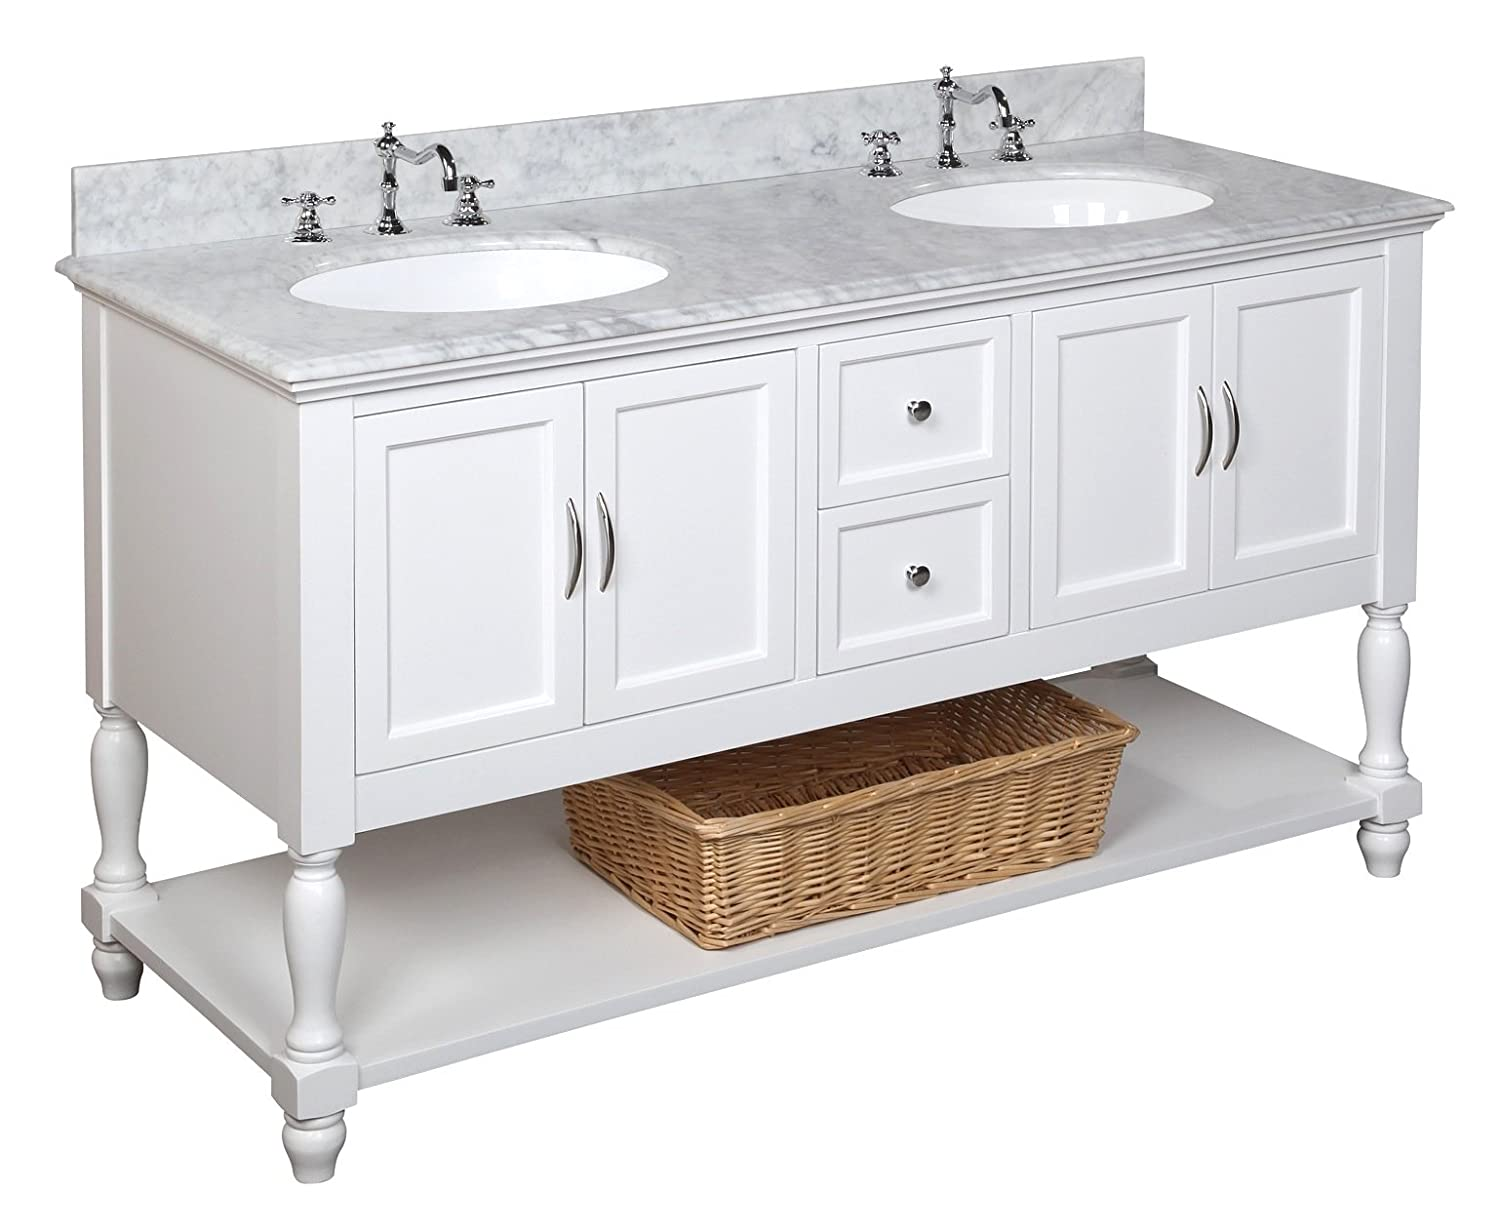 vanityh modern finish bath double top i sink berkeley cabinet camile vanity bathroom white at adornus inch